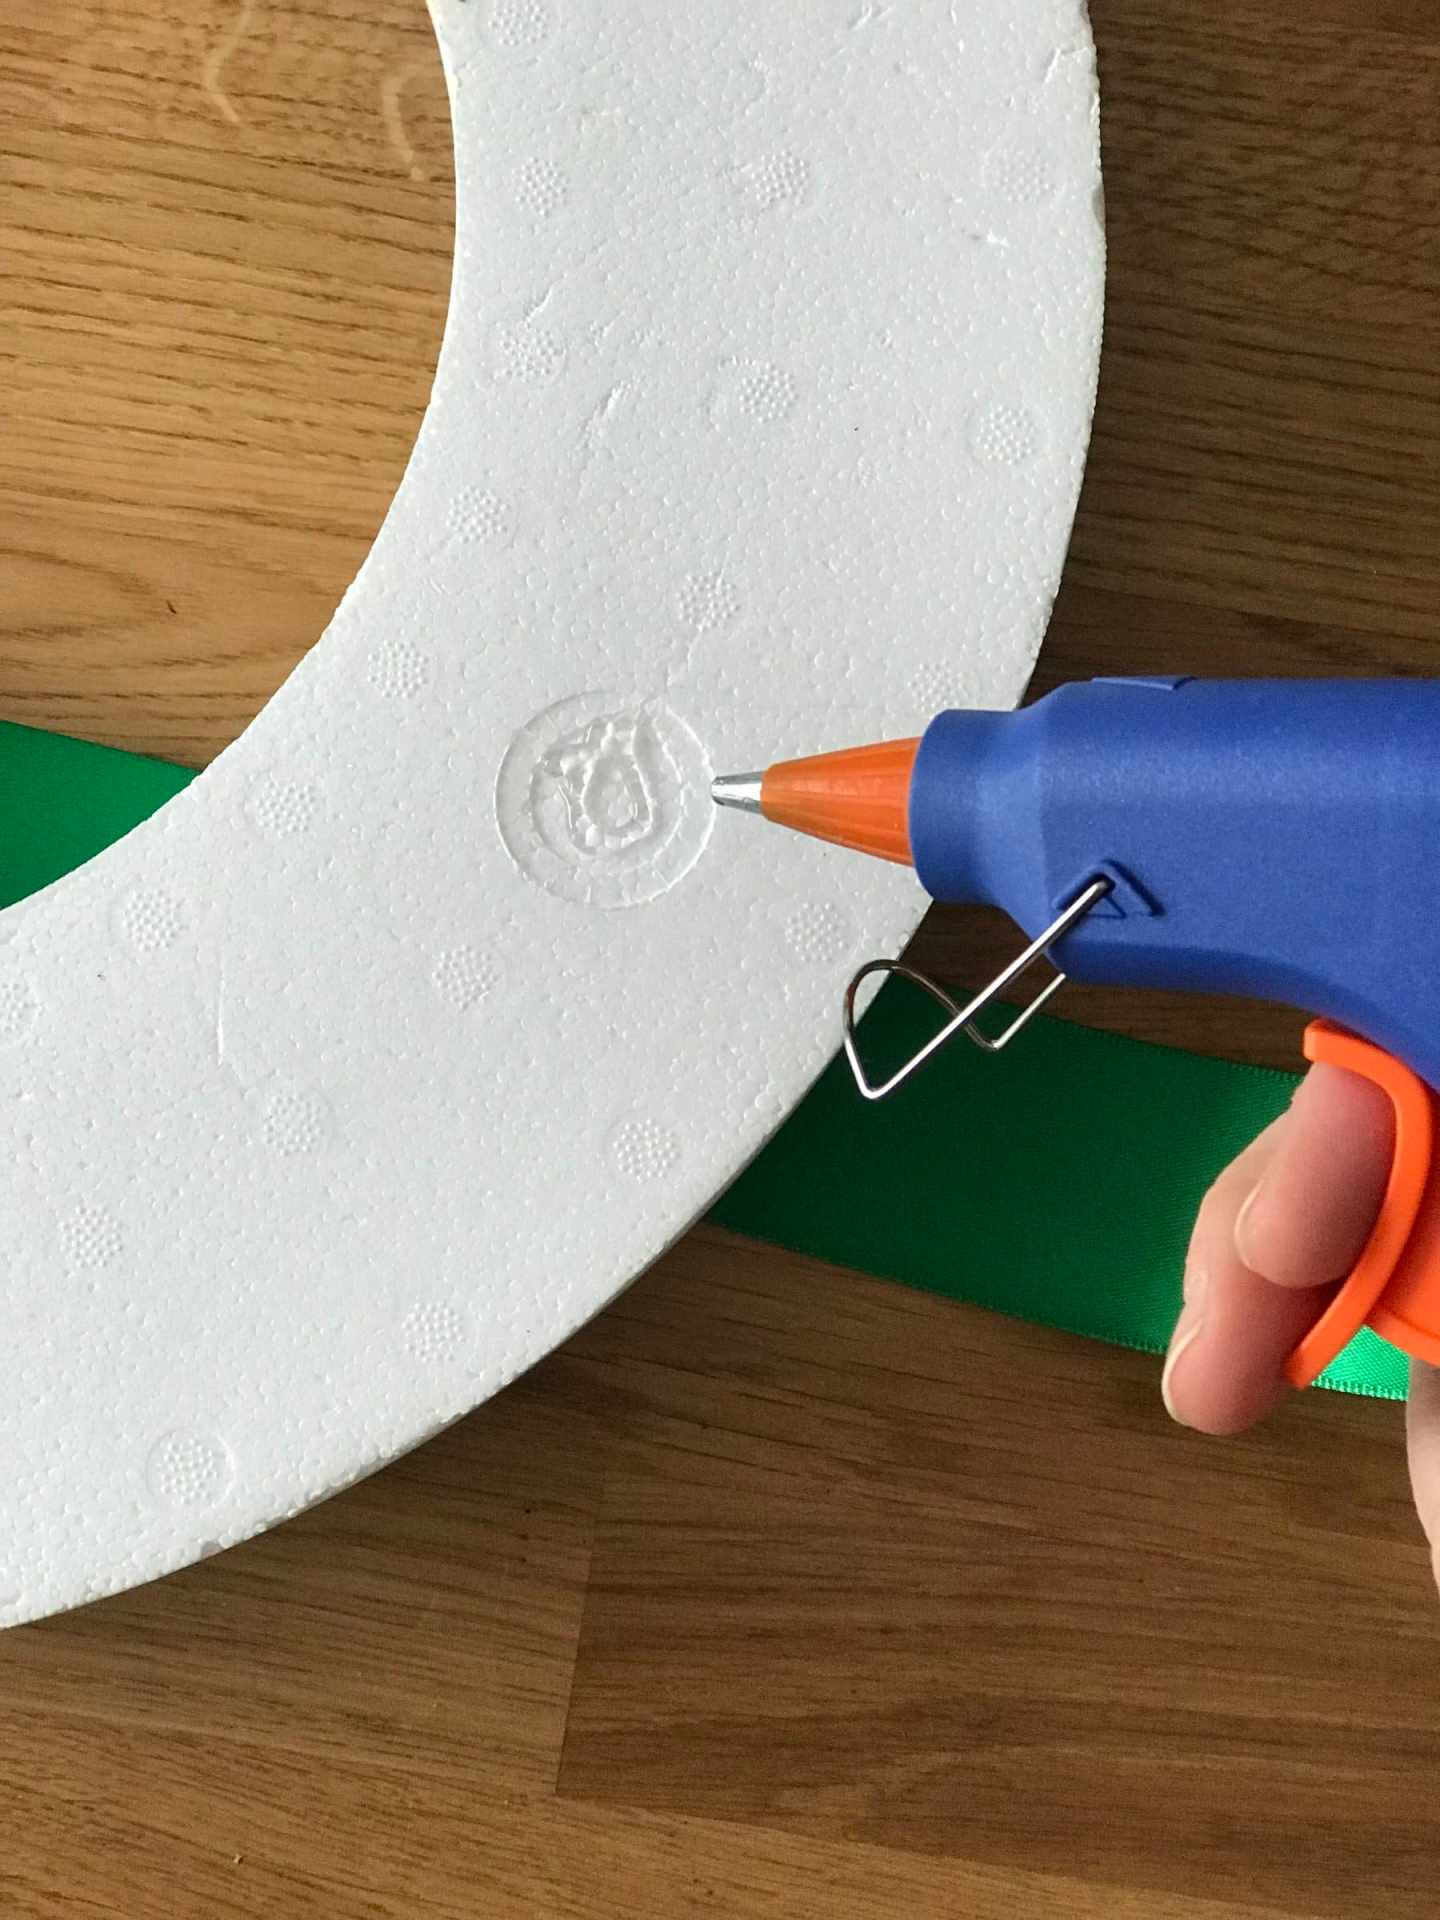 Applying a small amount of glue to fix the ribbon